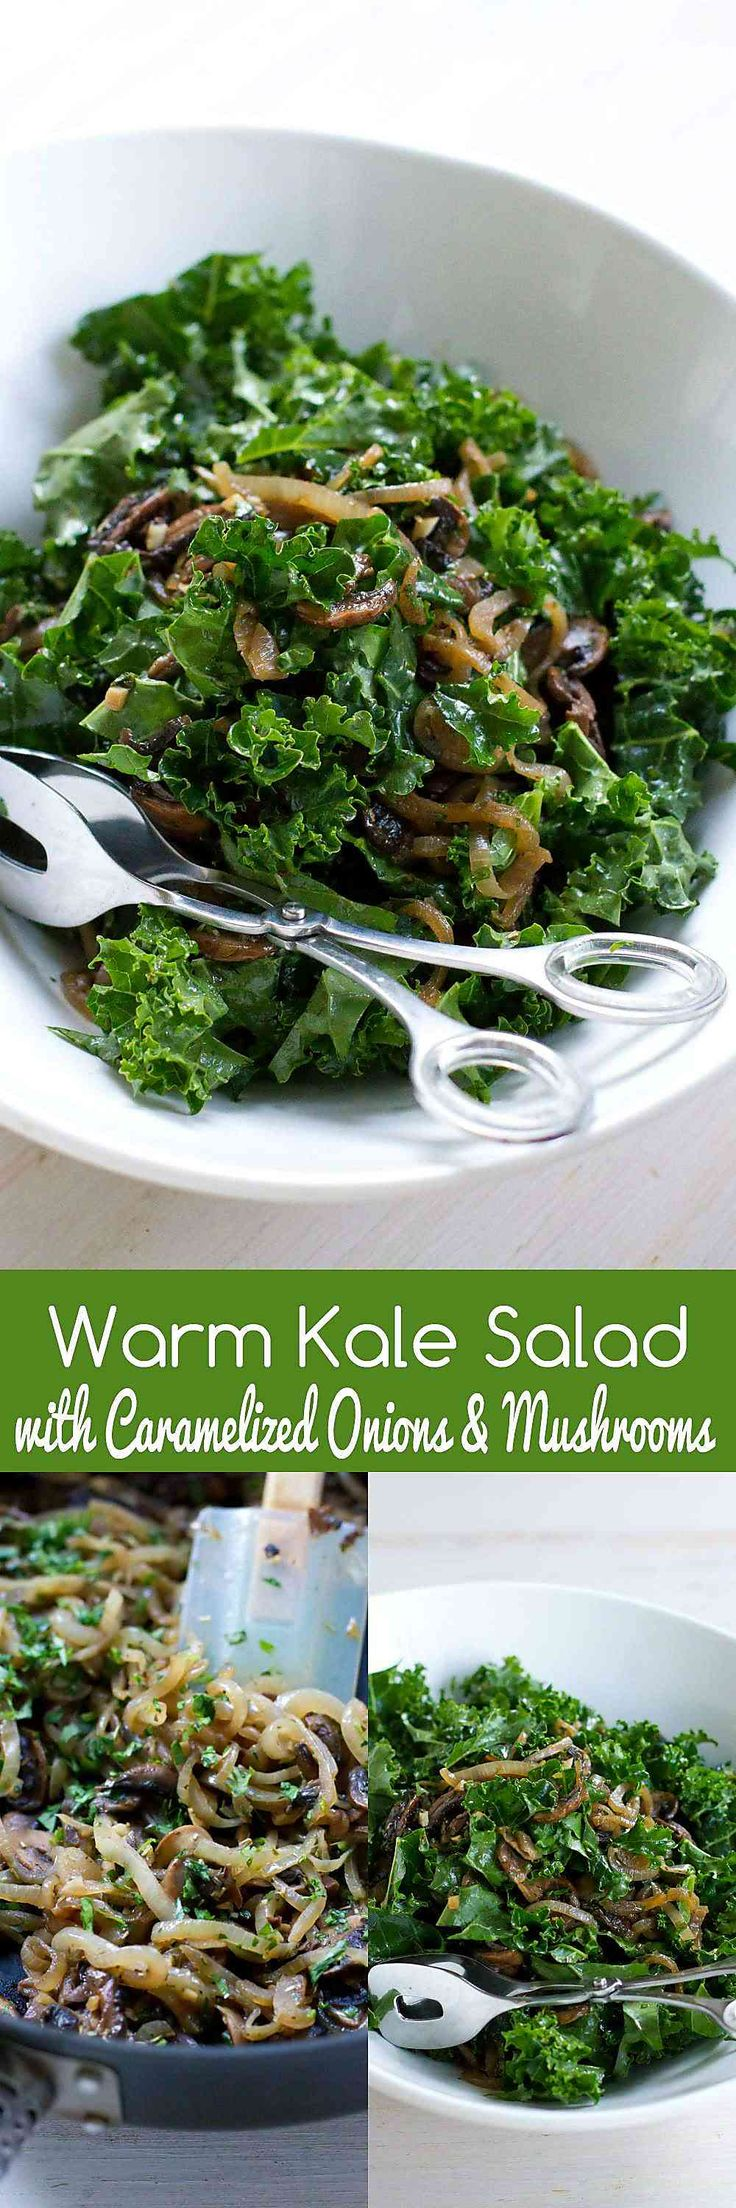 Warm Kale Salad with Caramelized Onions and Mushrooms…Serve this up as a healthy side dish or double up for an entrée serving. 102 calories and 2 Weight Watchers SmartPoints